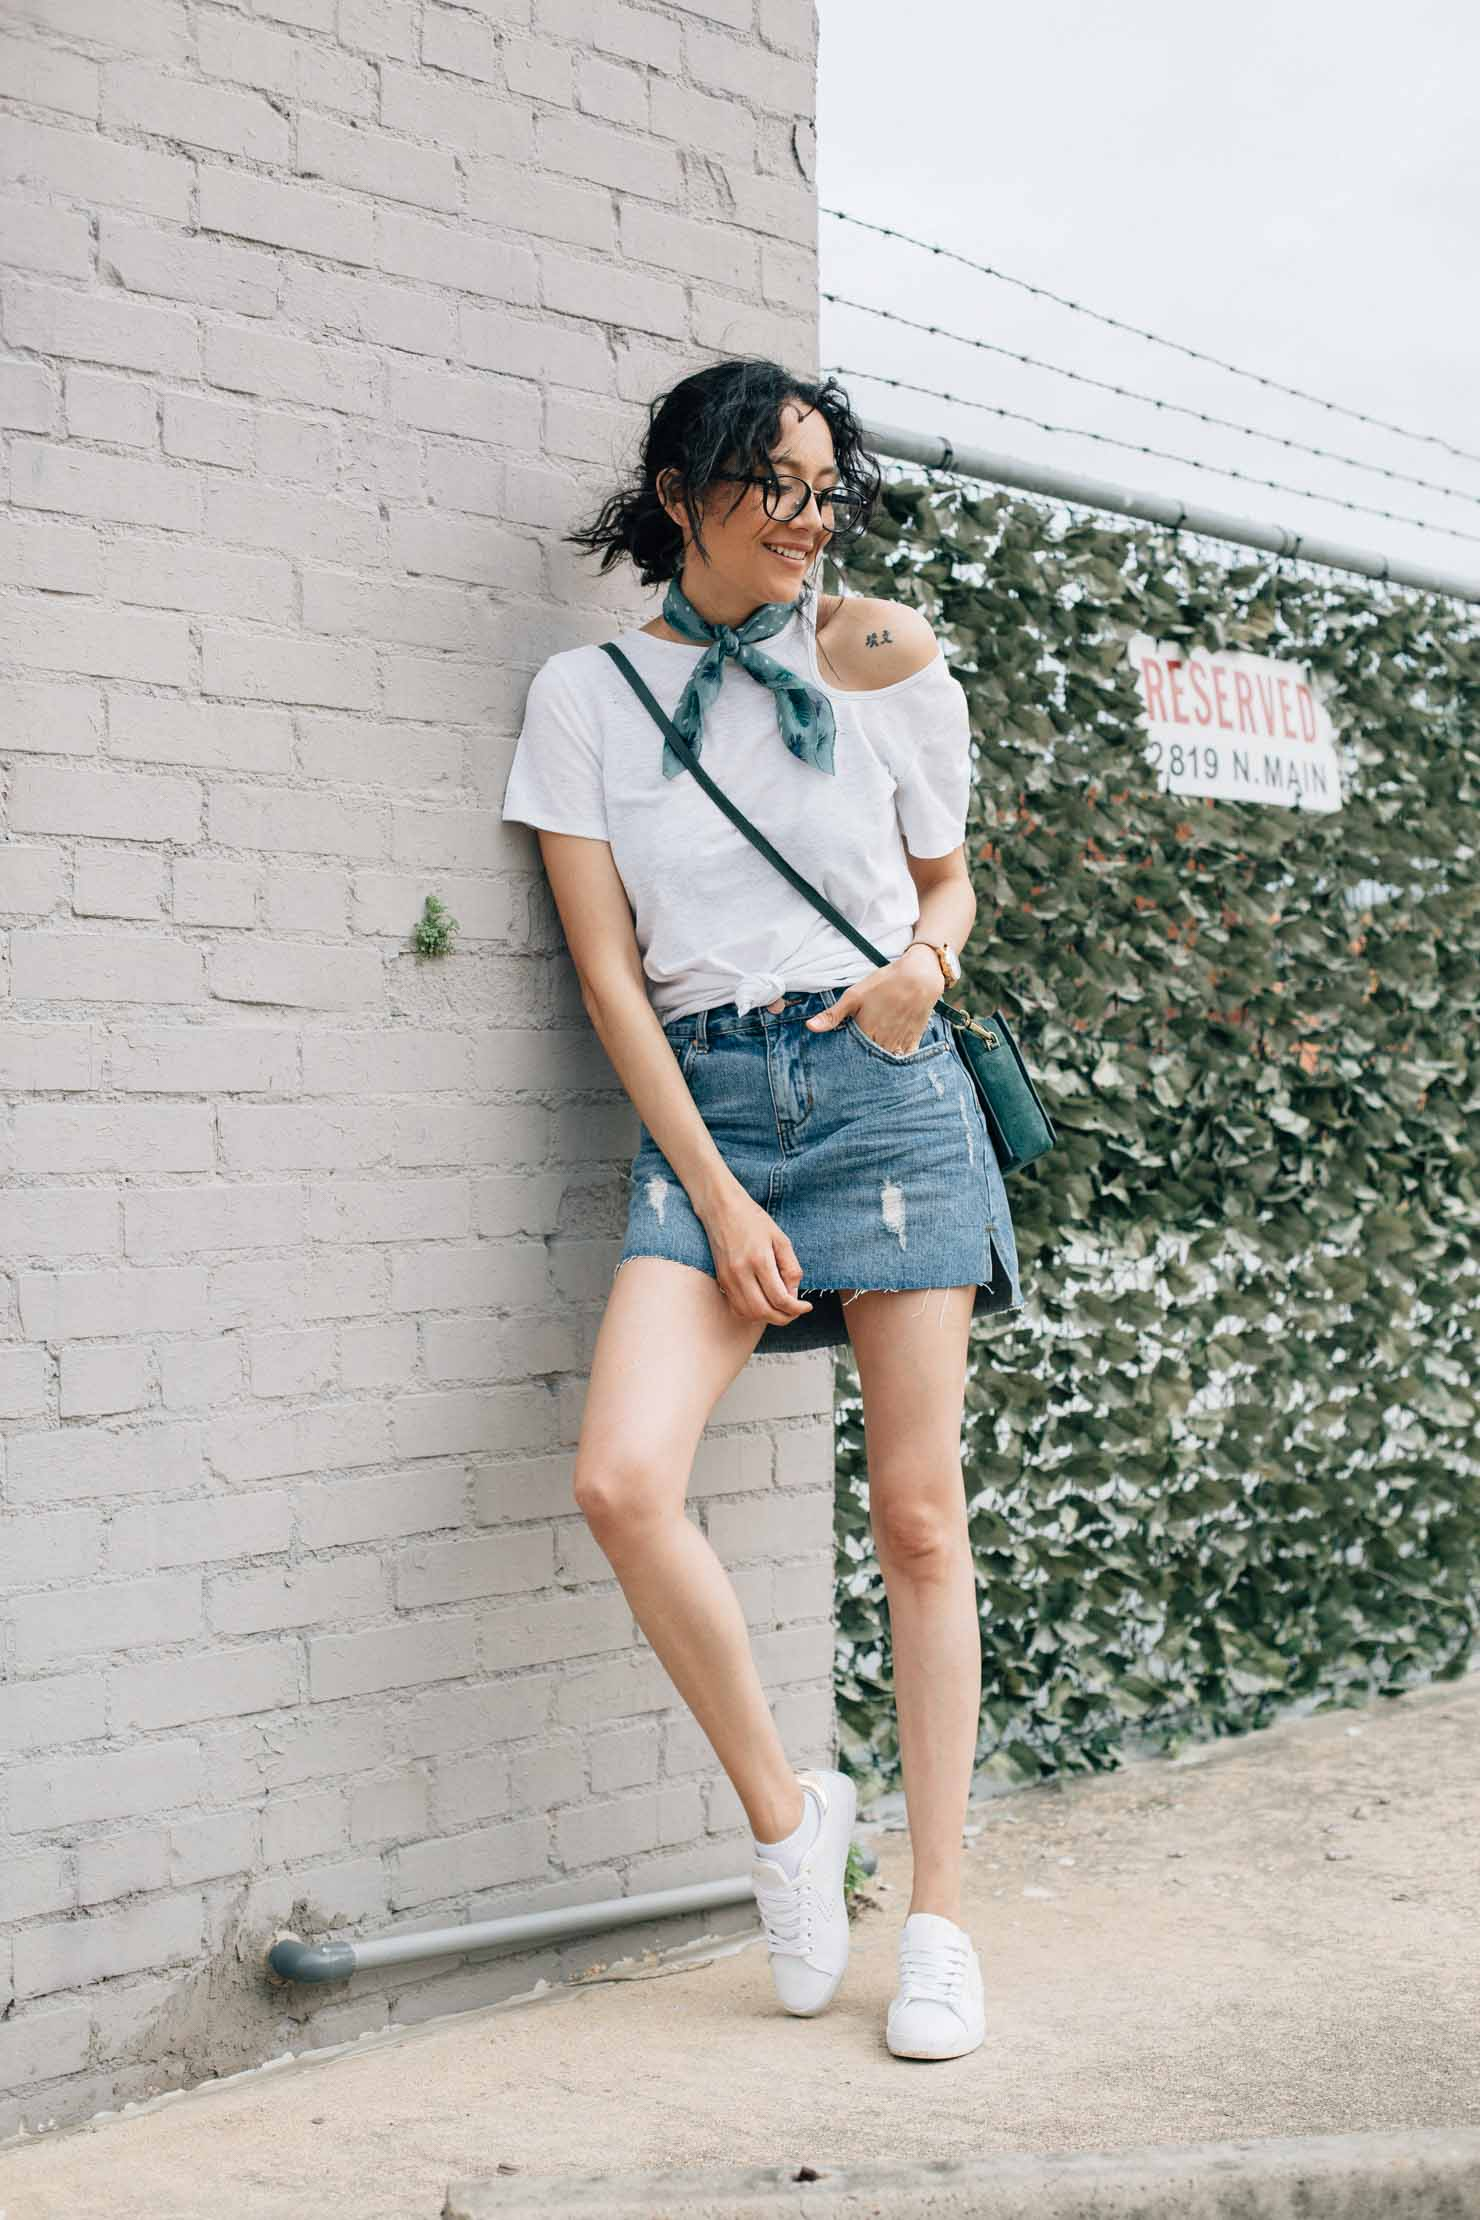 How to achieve perfect effortless style